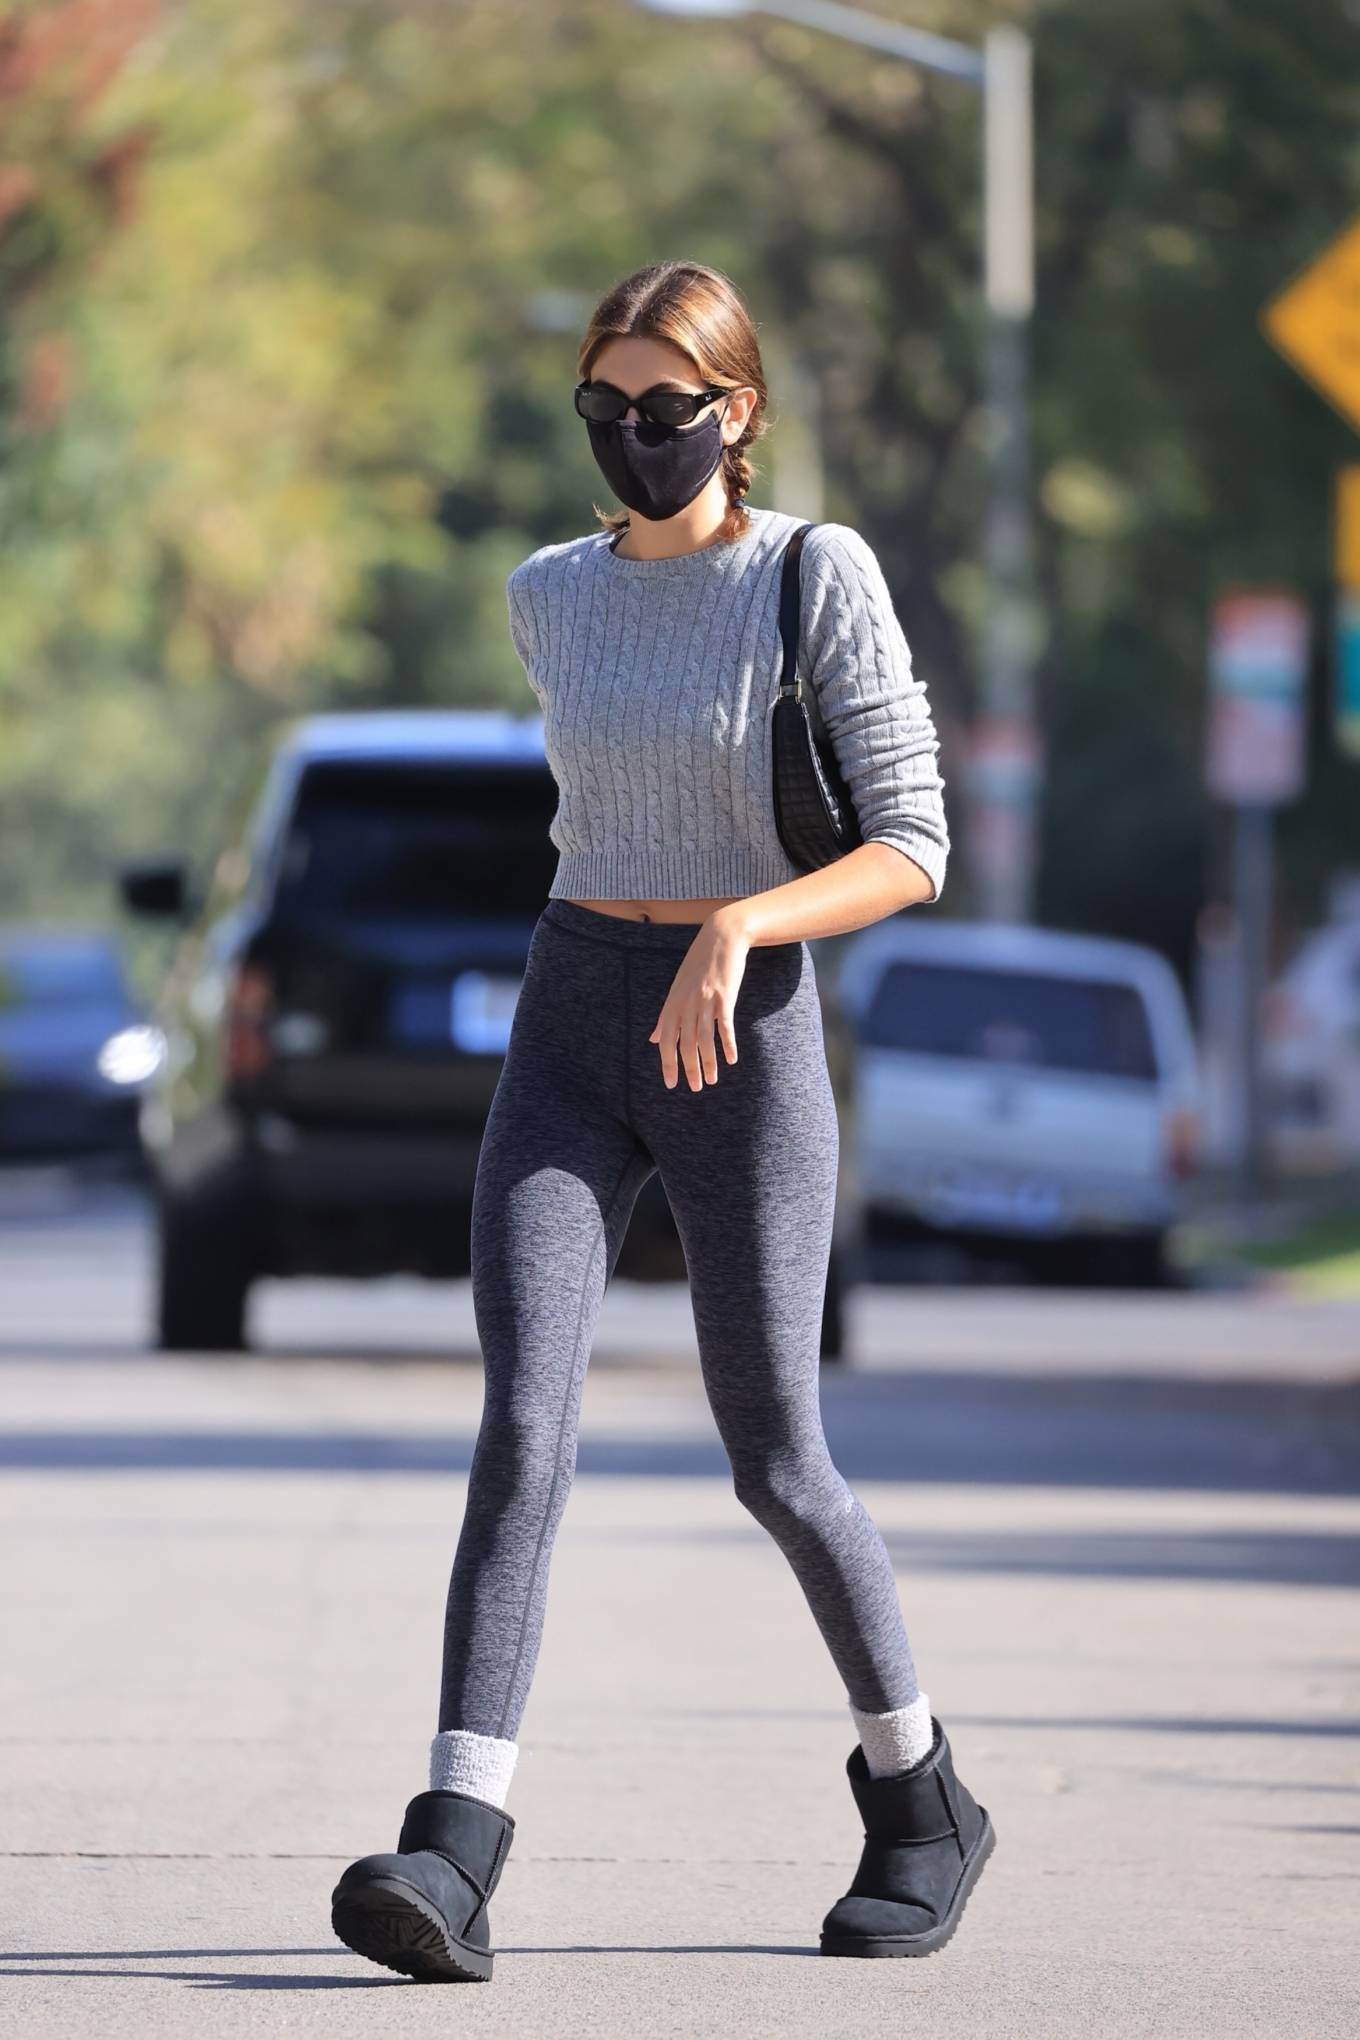 Kaia Gerber donning a fitted grey sweater with a woolen fabric, rolled sleeves, pattern and a crew neck